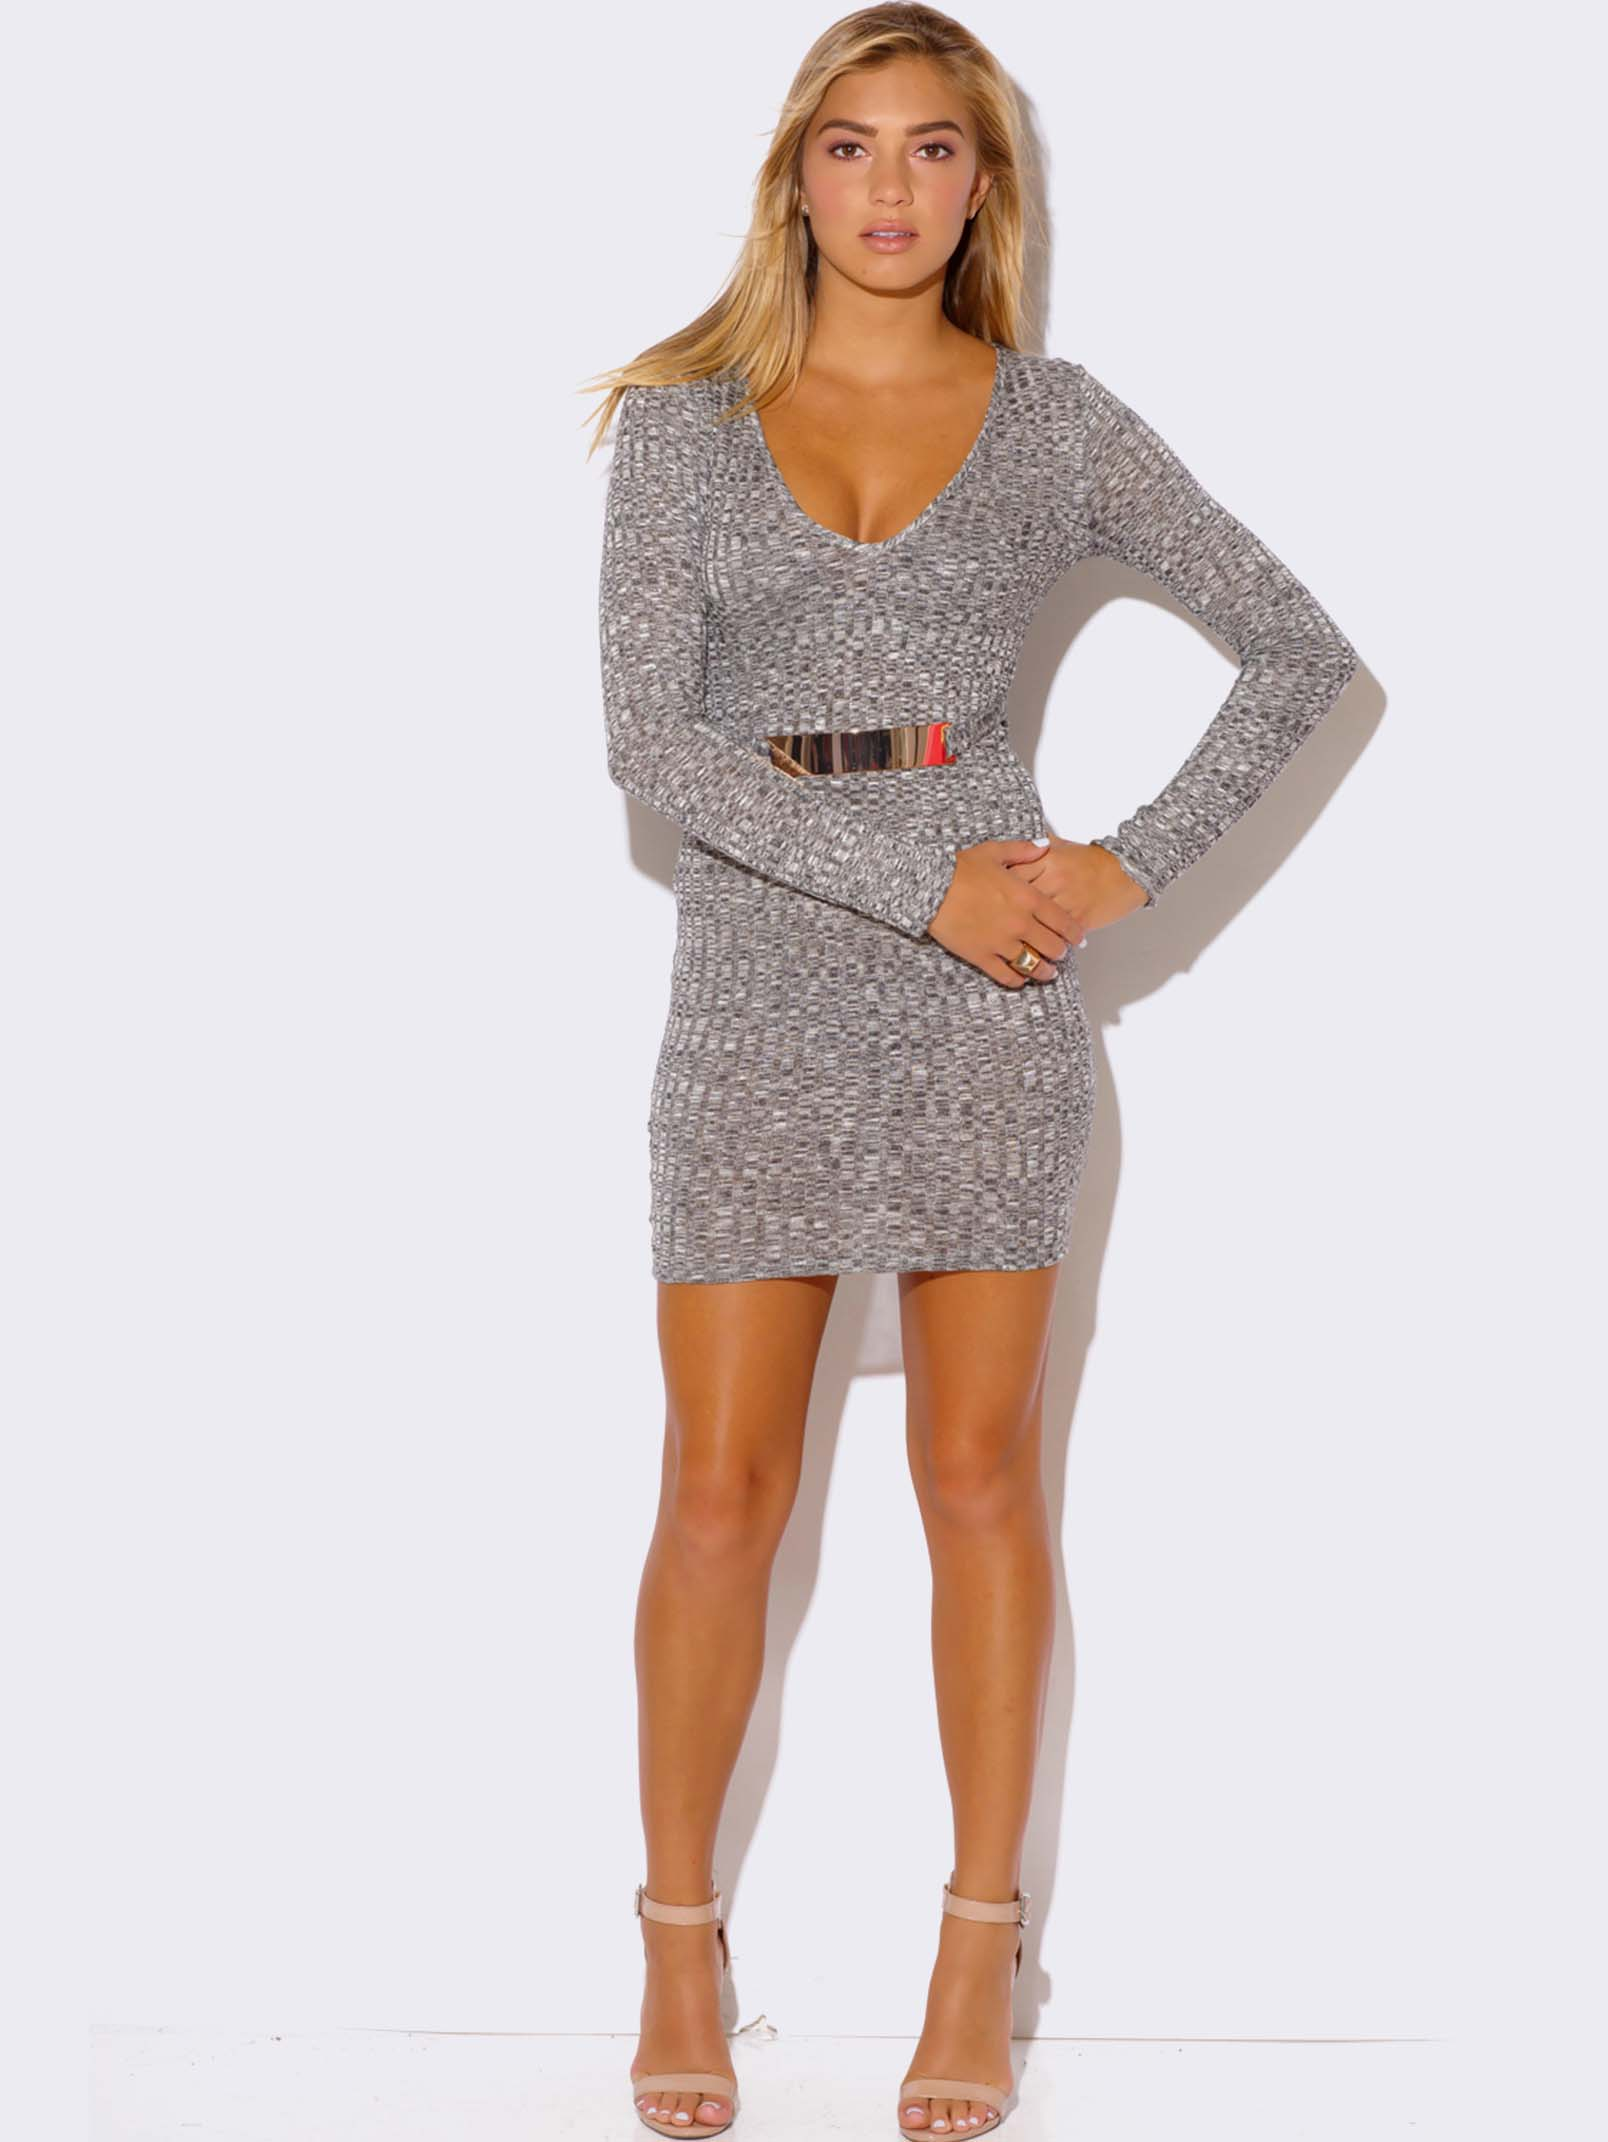 HEATHER GRAY LONG SLEEVE SWEATER DRESS - ModishOnline.com